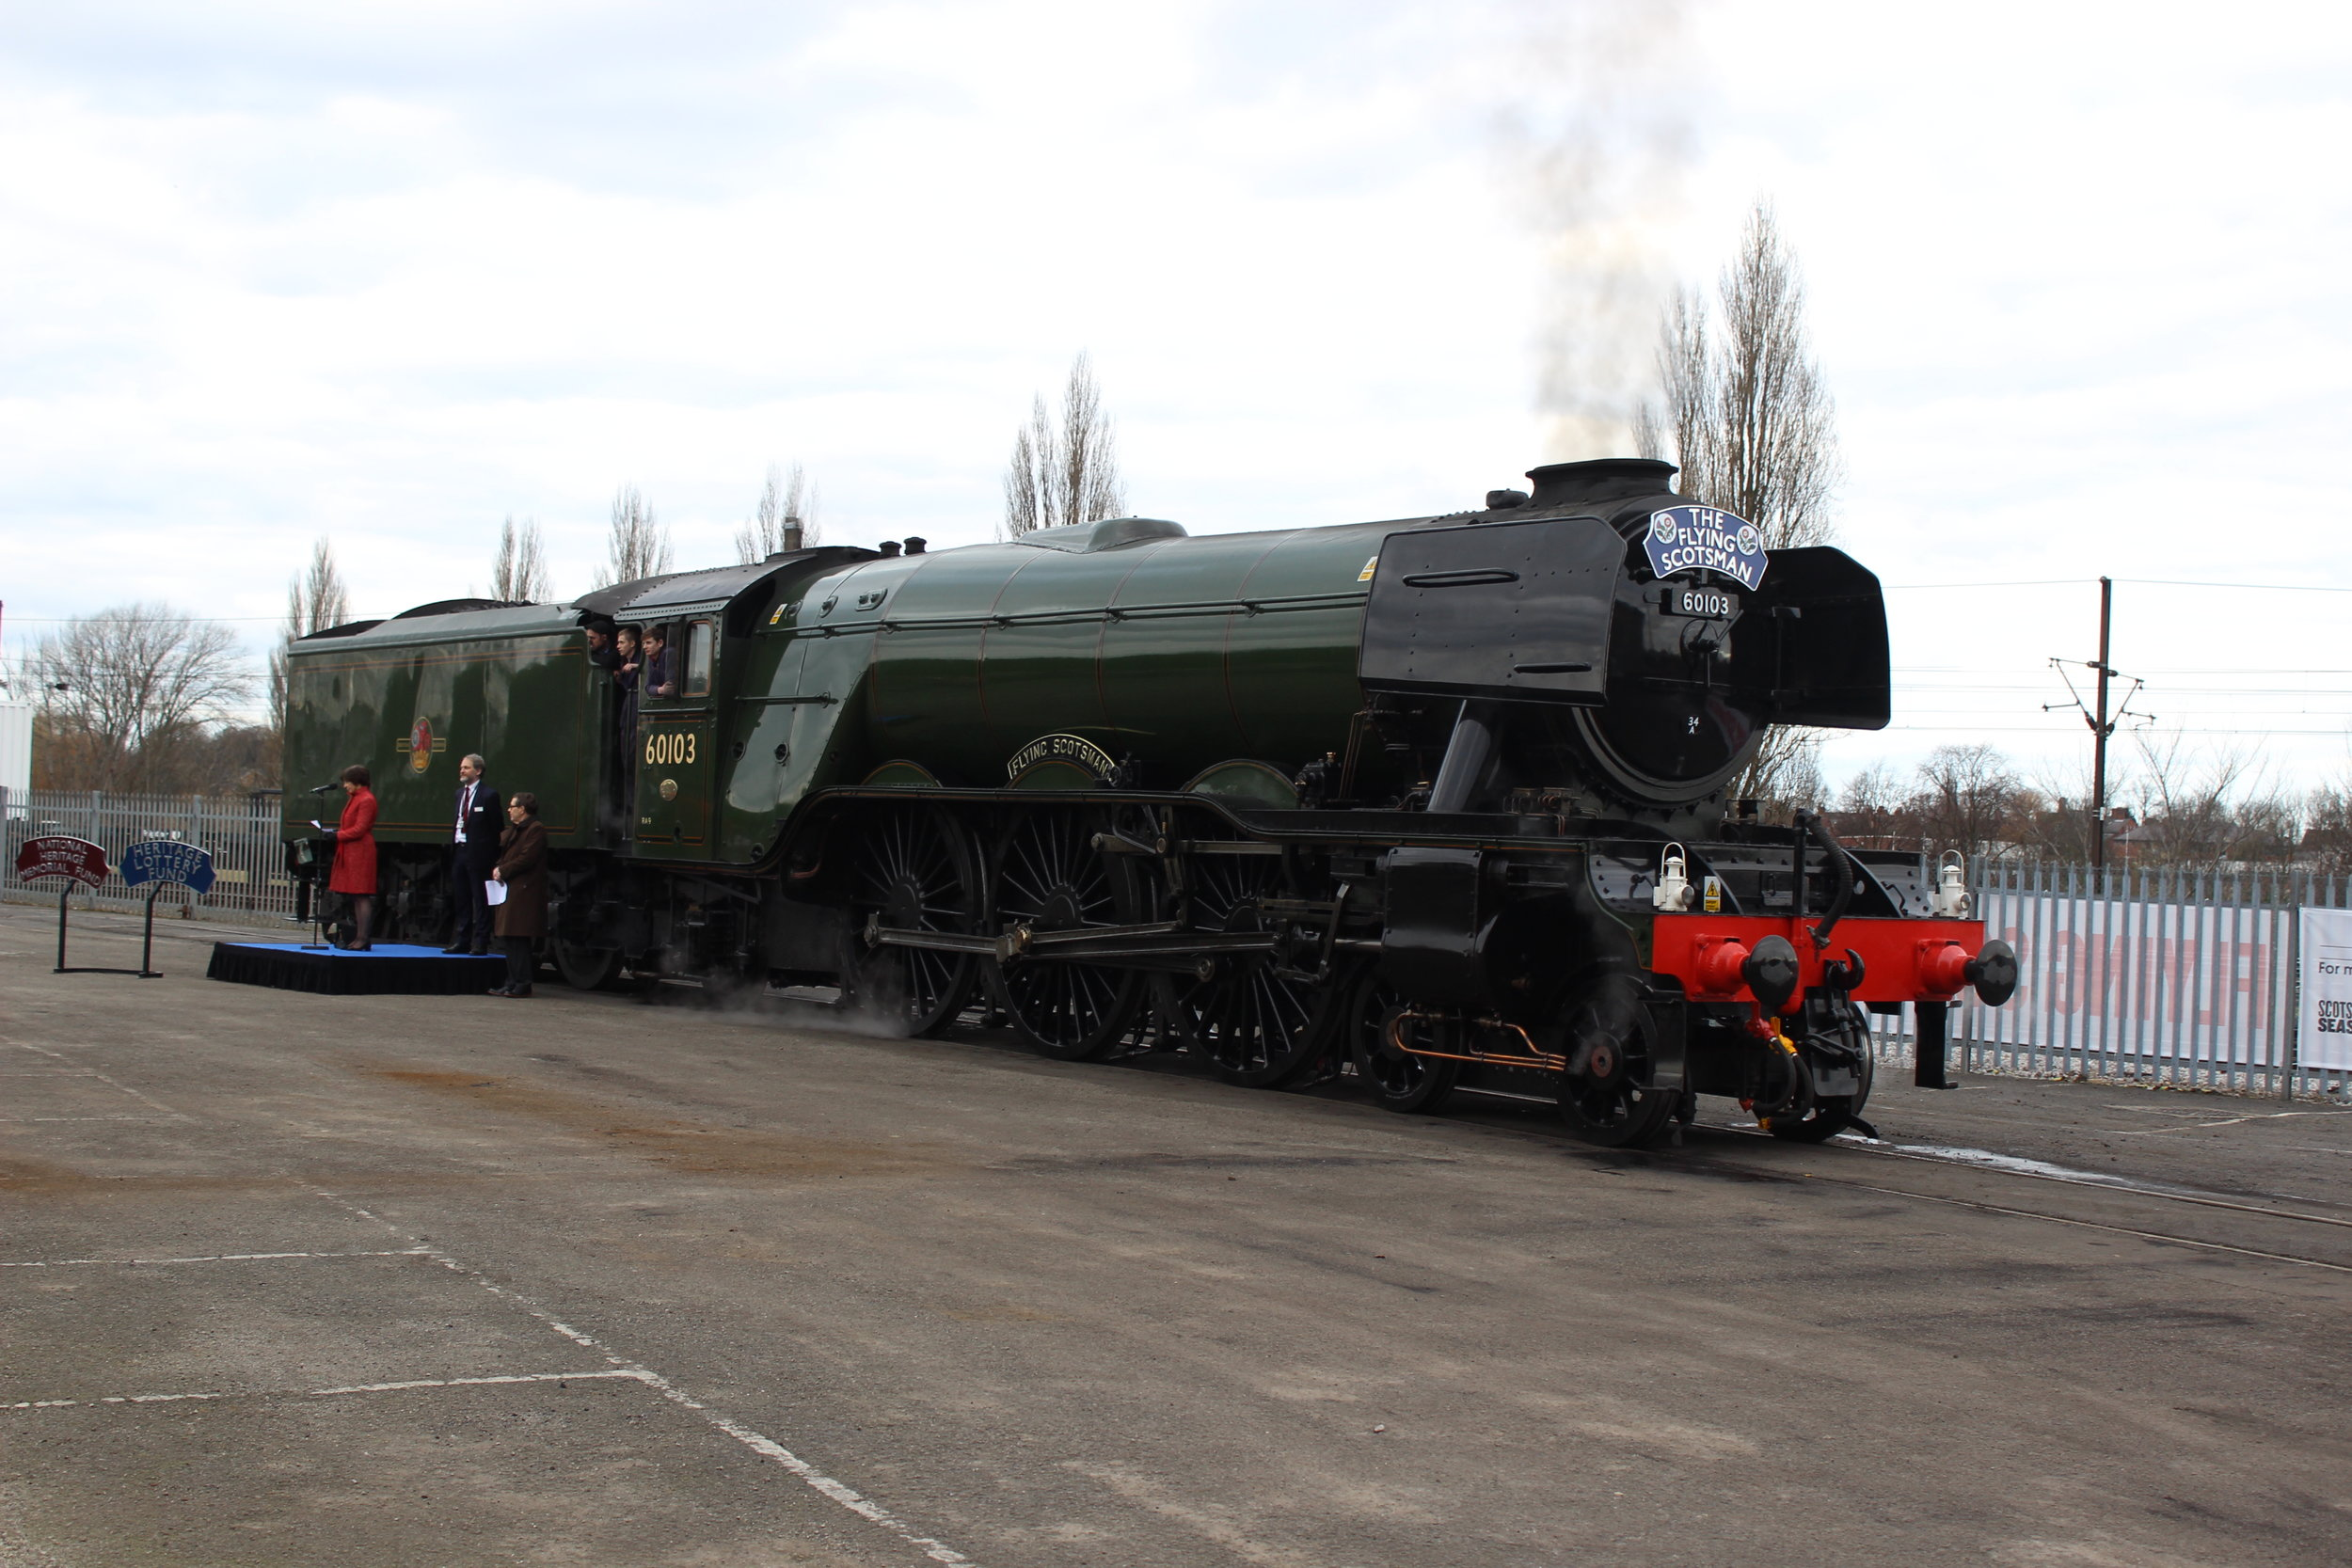 After a £6.8million restoration, 'A3' No. 60103  Flying Scotsman  makes a triumphant return to the National Railway Museum, following its inaugural main line run from King's Cross to York on February 25. TOM BRIGHT